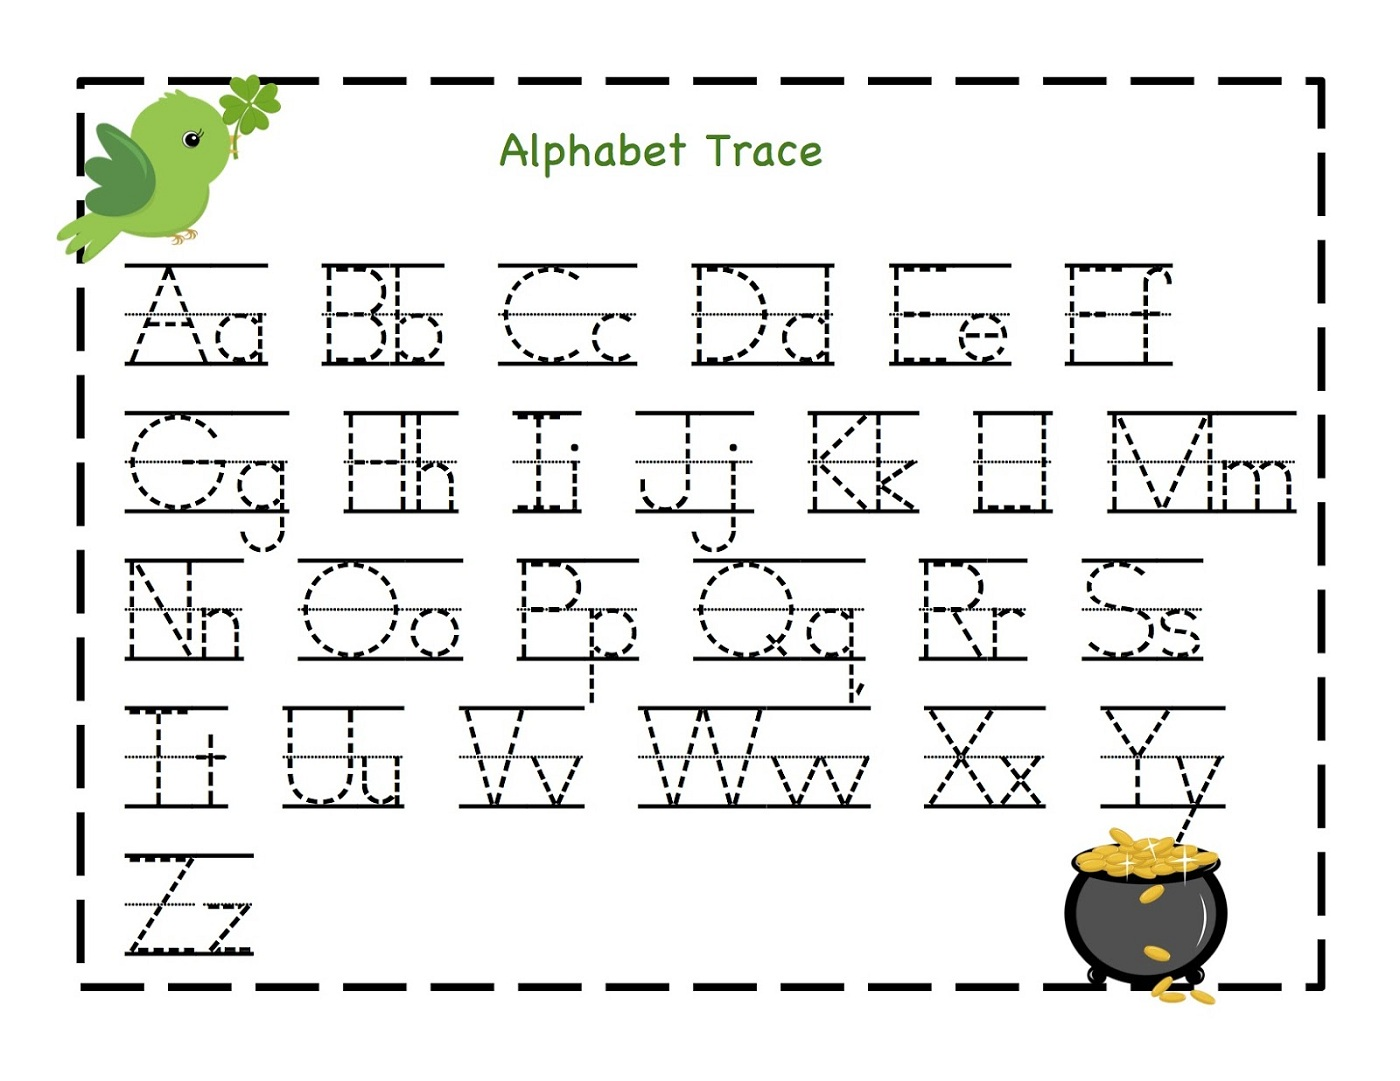 Worksheets Alphabet Worksheet For Kg Free worksheet 604780 printable alphabet worksheets for kindergarten scalien kindergarten